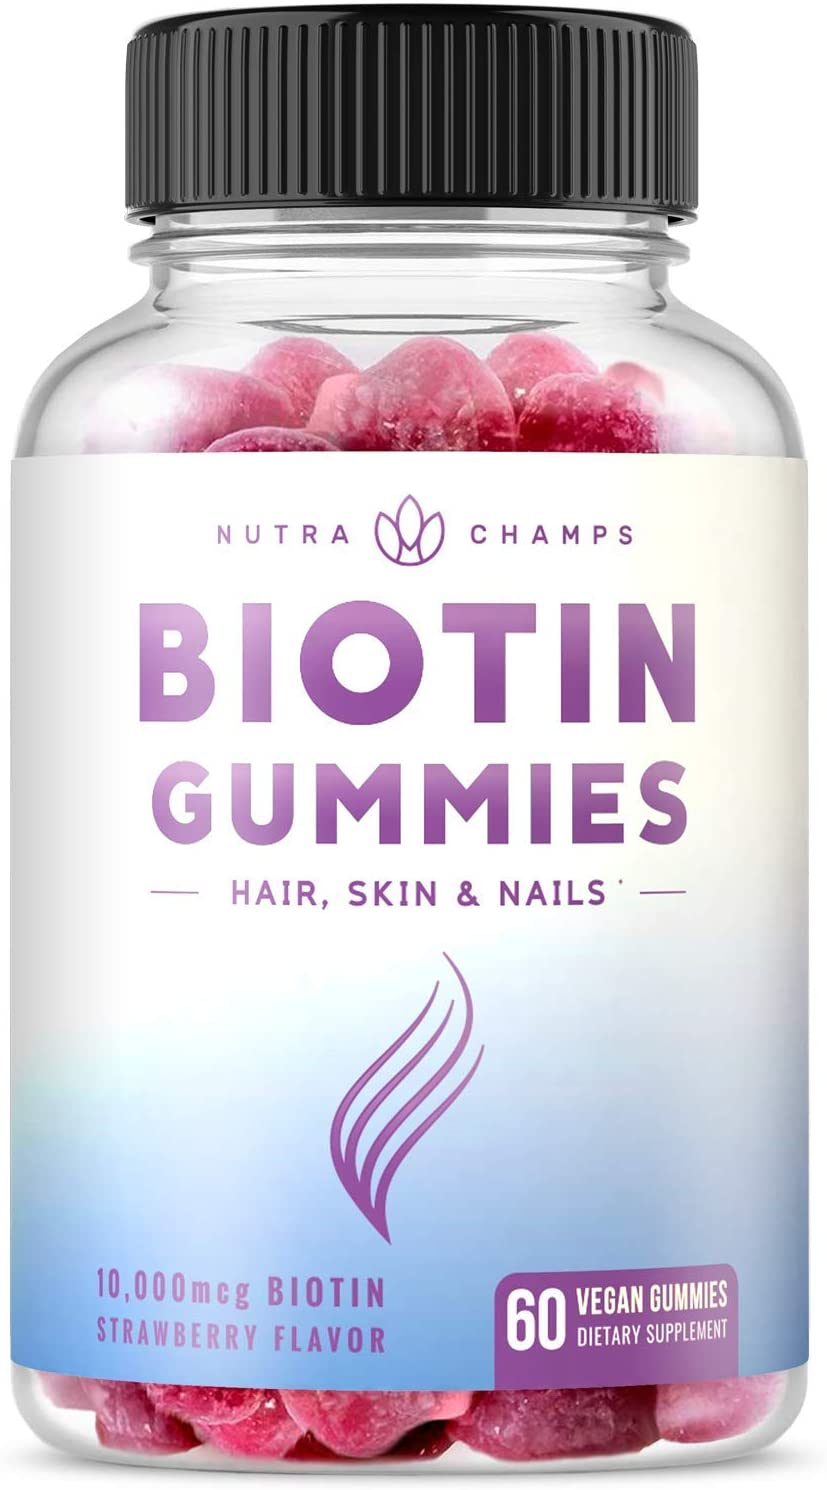 Biotin Gummies 10,000mcg [Highest Potency] for Healthy Hair, Skin & Nails for Adults & Kids - 5000mcg in Each Gummy Vitamin - Vegan, Non-GMO, Pectin-Based Hair Growth Supplement